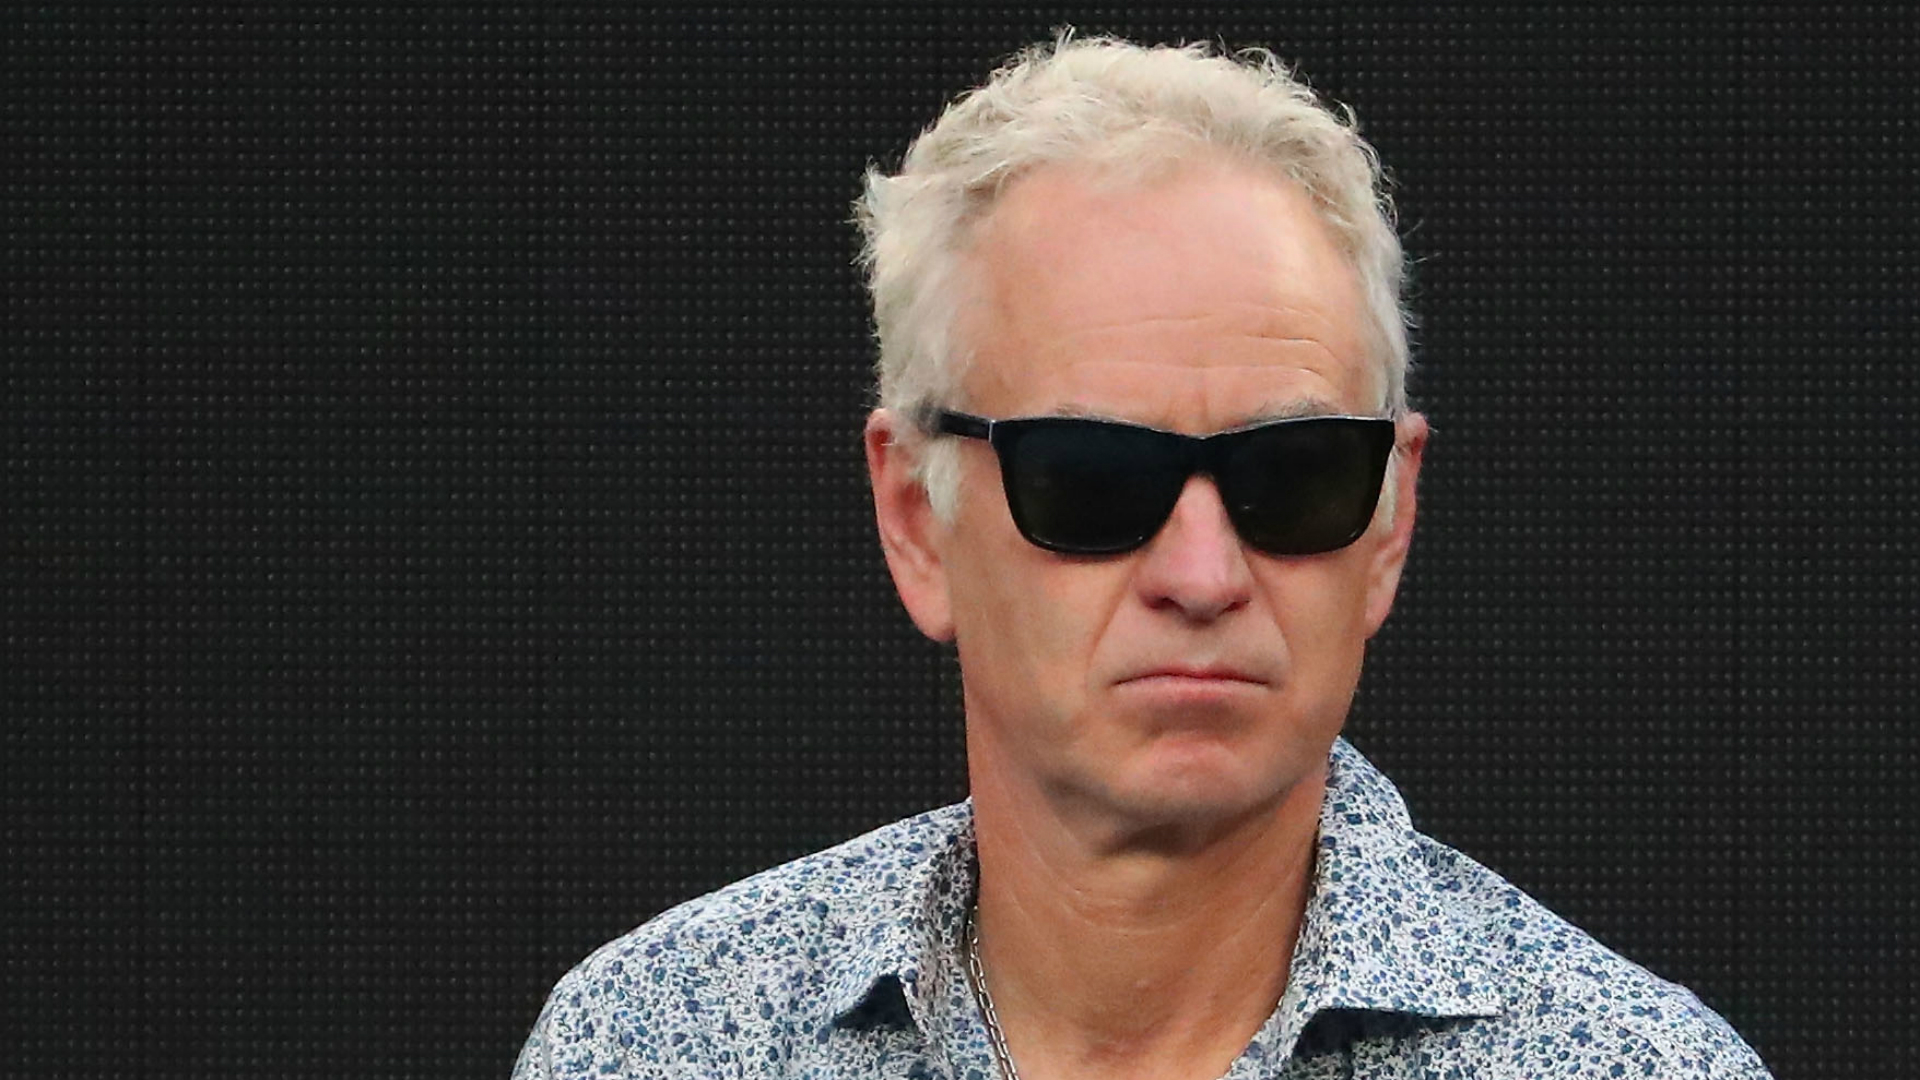 John McEnroe refuses to apologize for ments about Serena